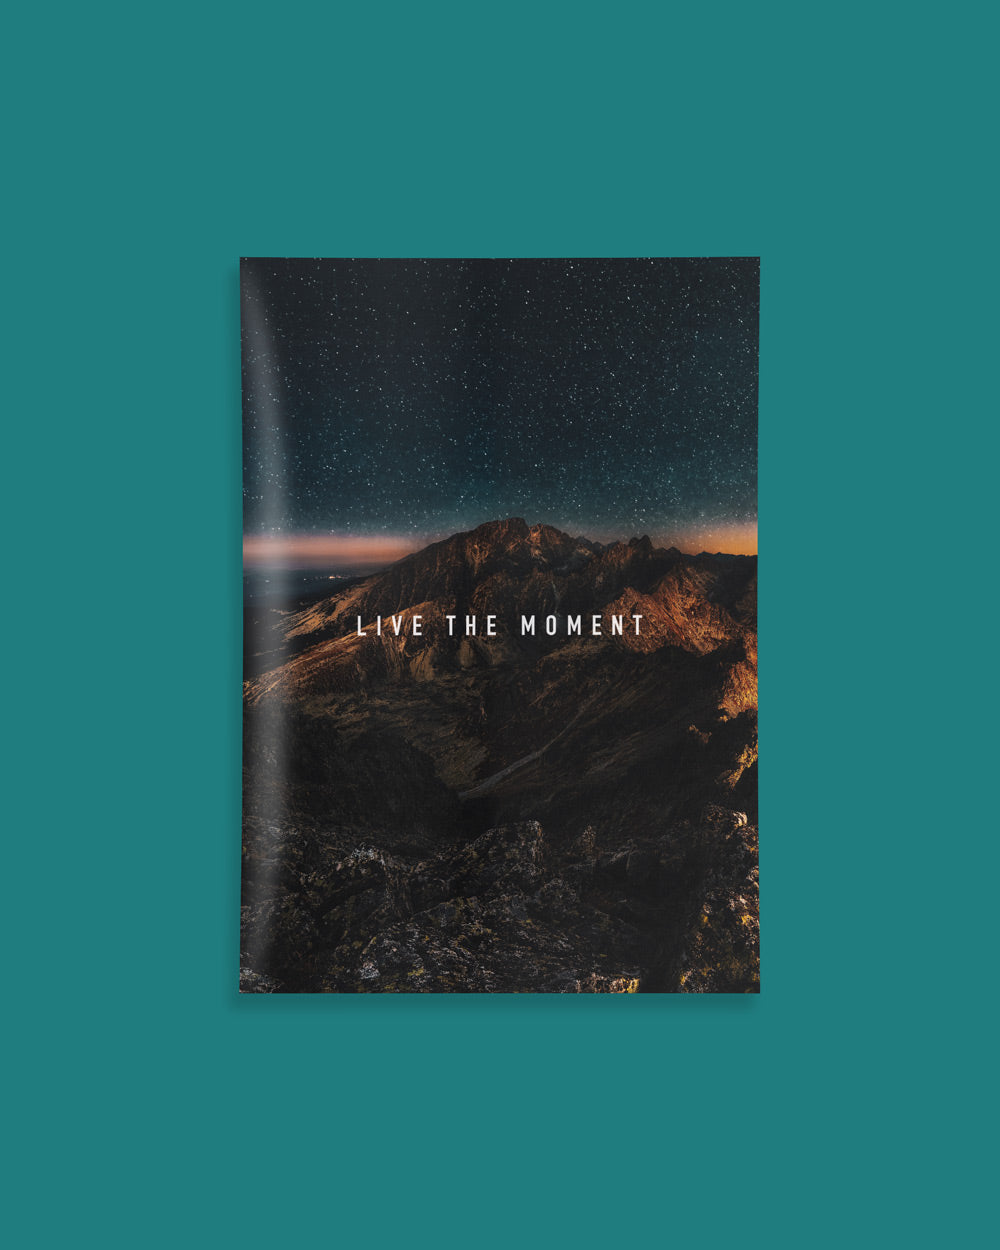 Live The Moment Poster - HoodieCollab